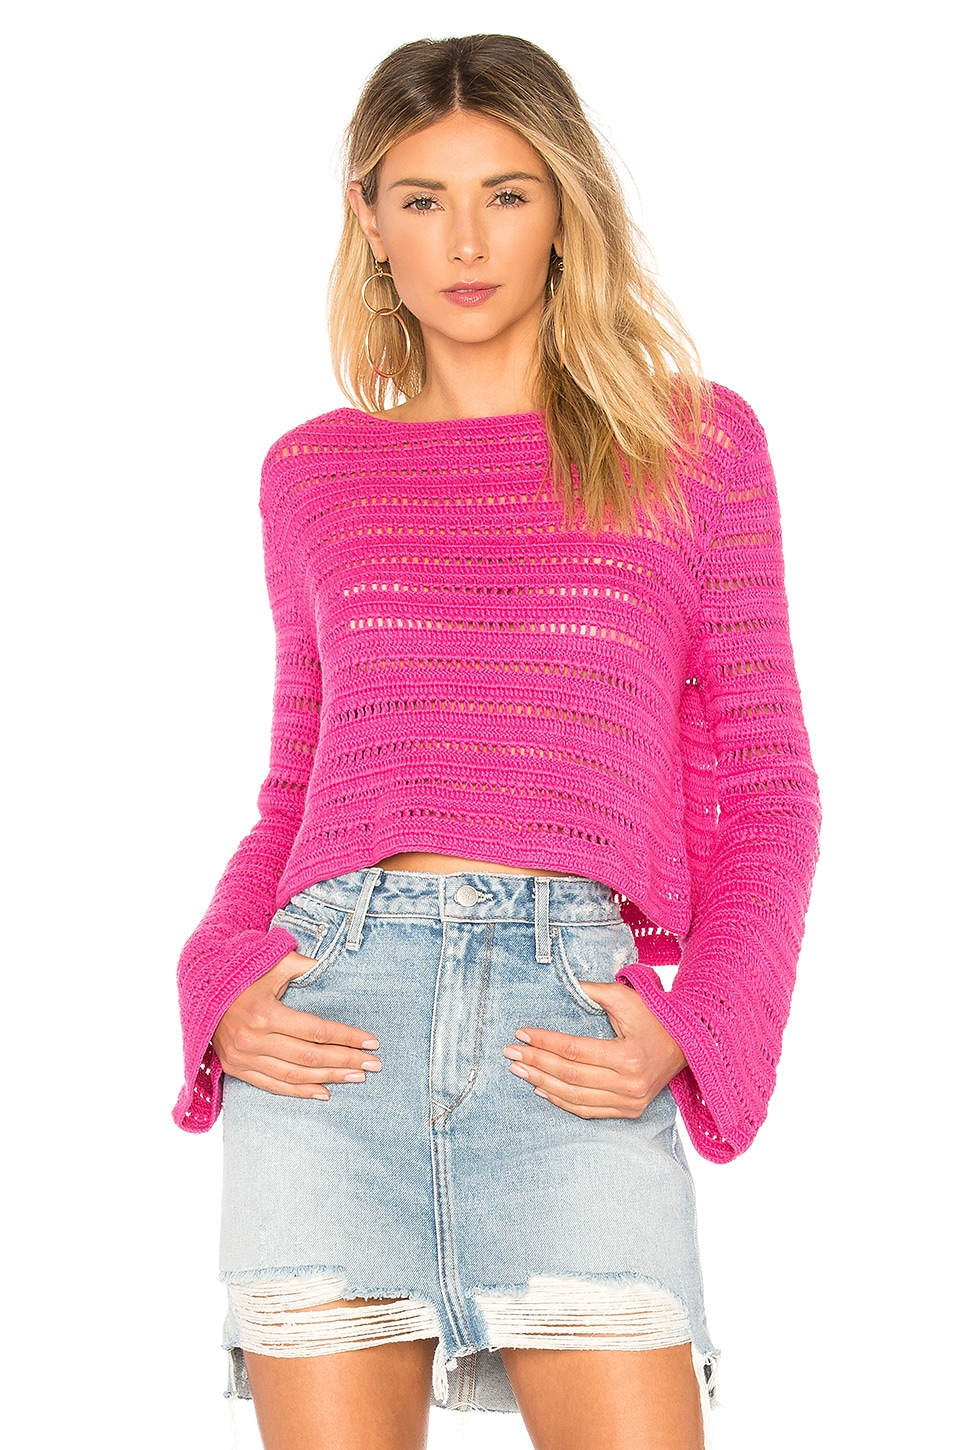 Lovers + Friends Amelia Sweater in Hot Pink